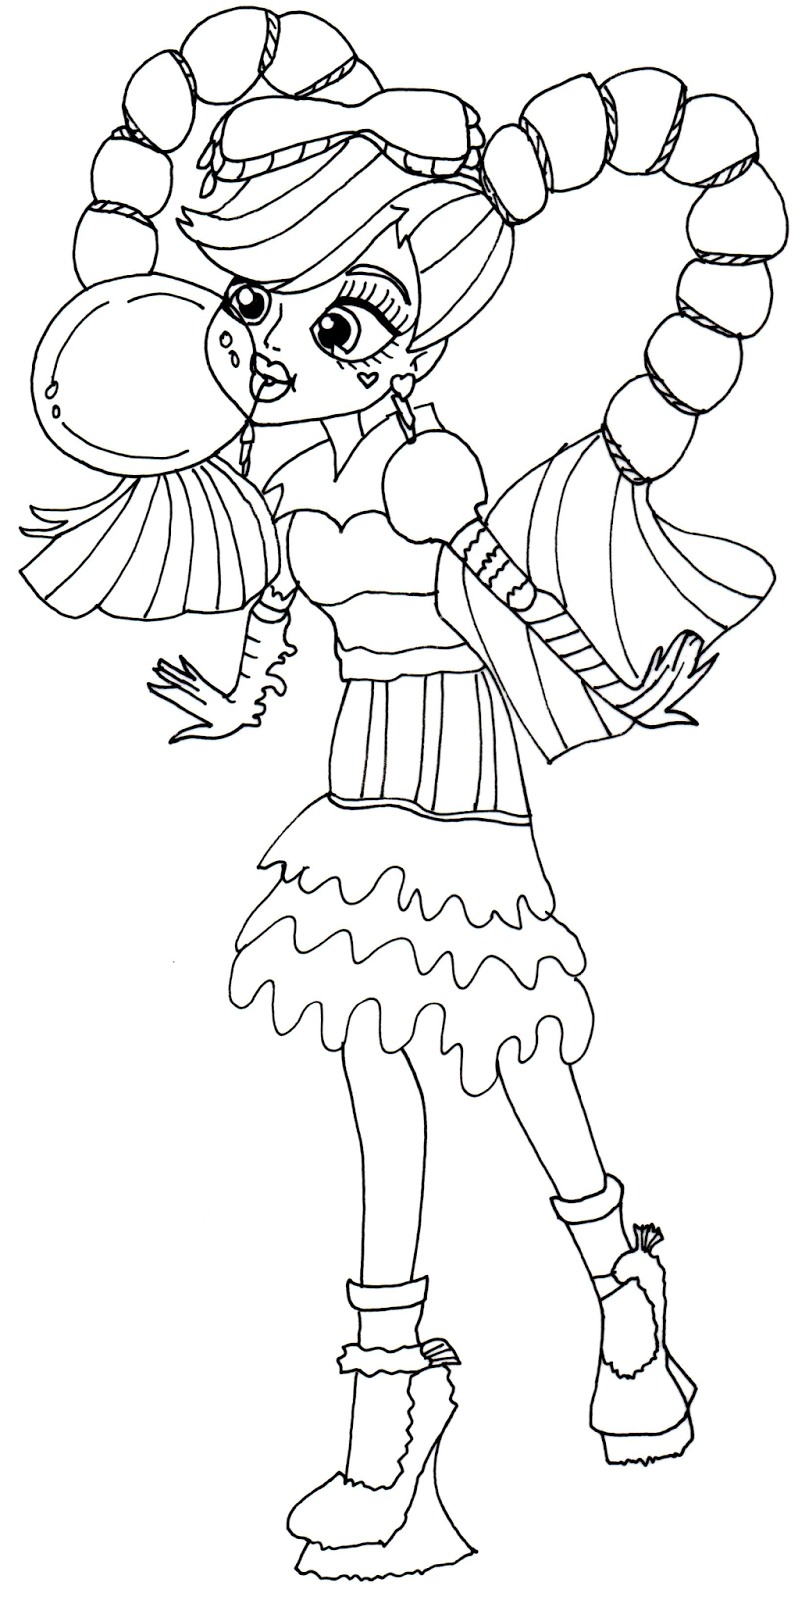 Monster high for coloring part 3 for Monster high printables coloring pages